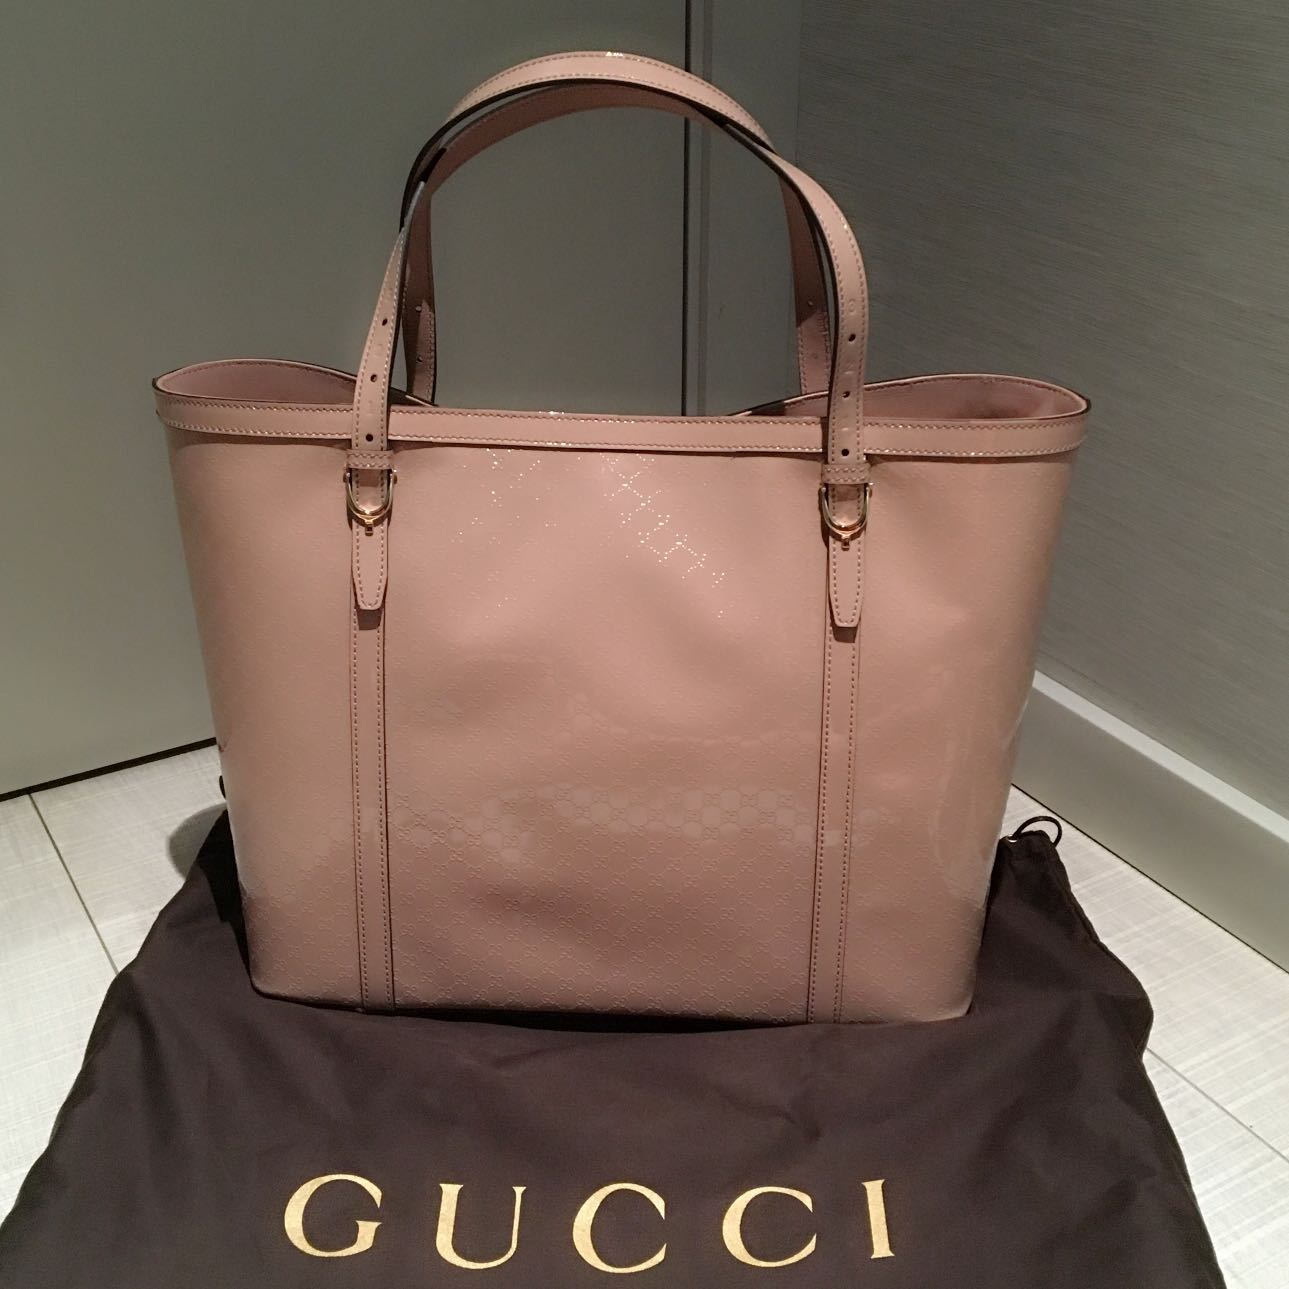 3402a40d3c85 PINK GUCCI PATENT LEATHER MONOGRAM EMBOSSED MICROGUCCISSIMA TOTE BAG ...